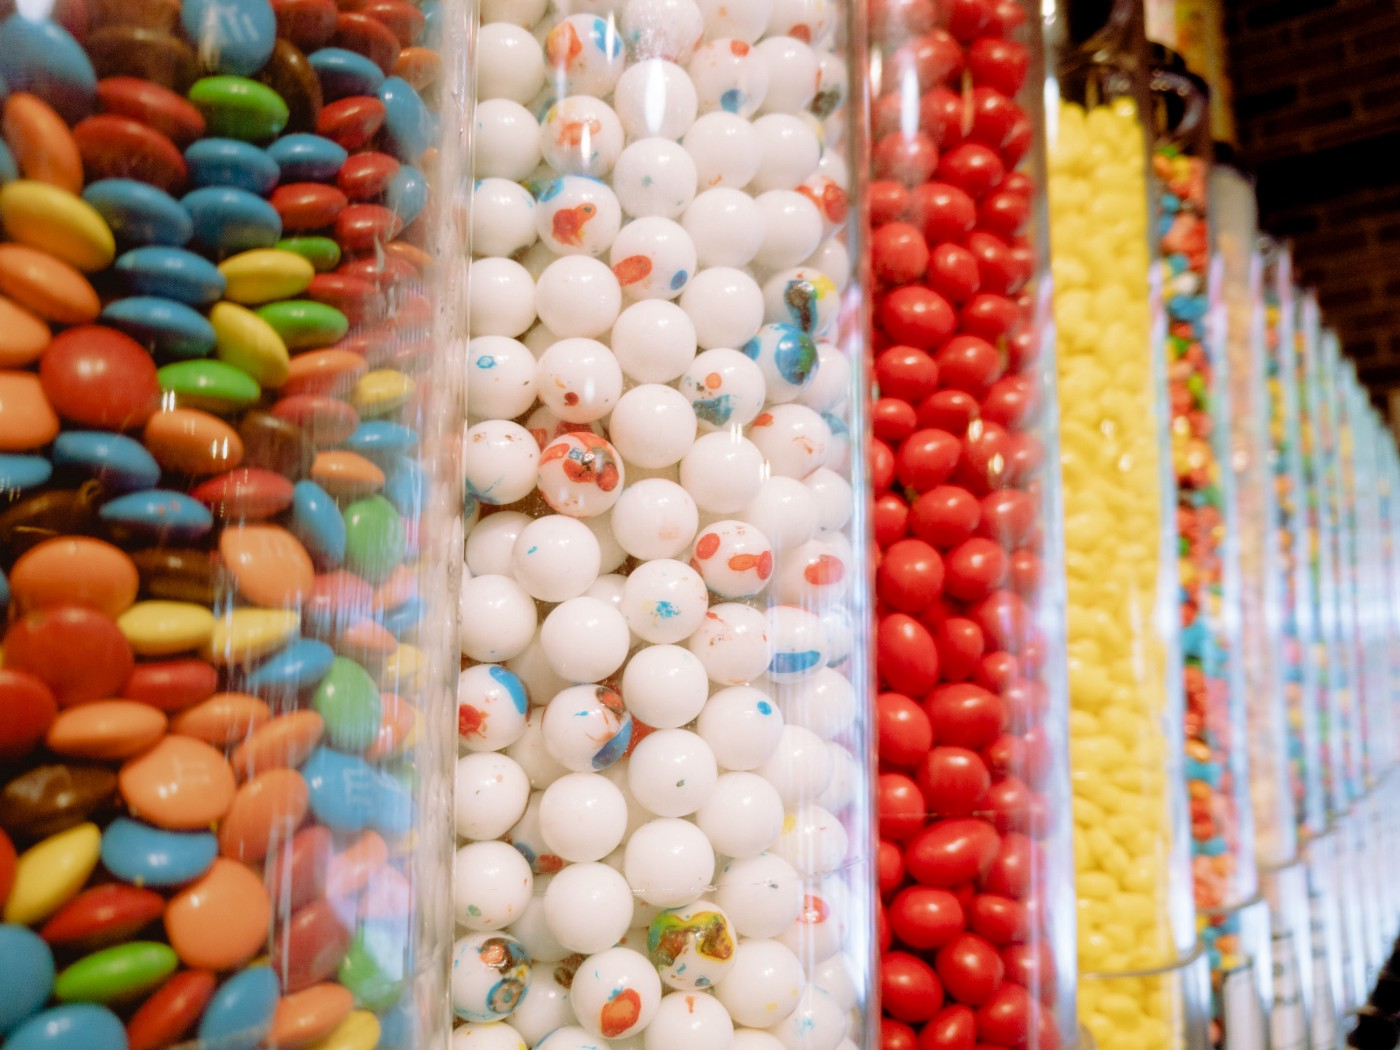 different types of candy sorted into glass jars